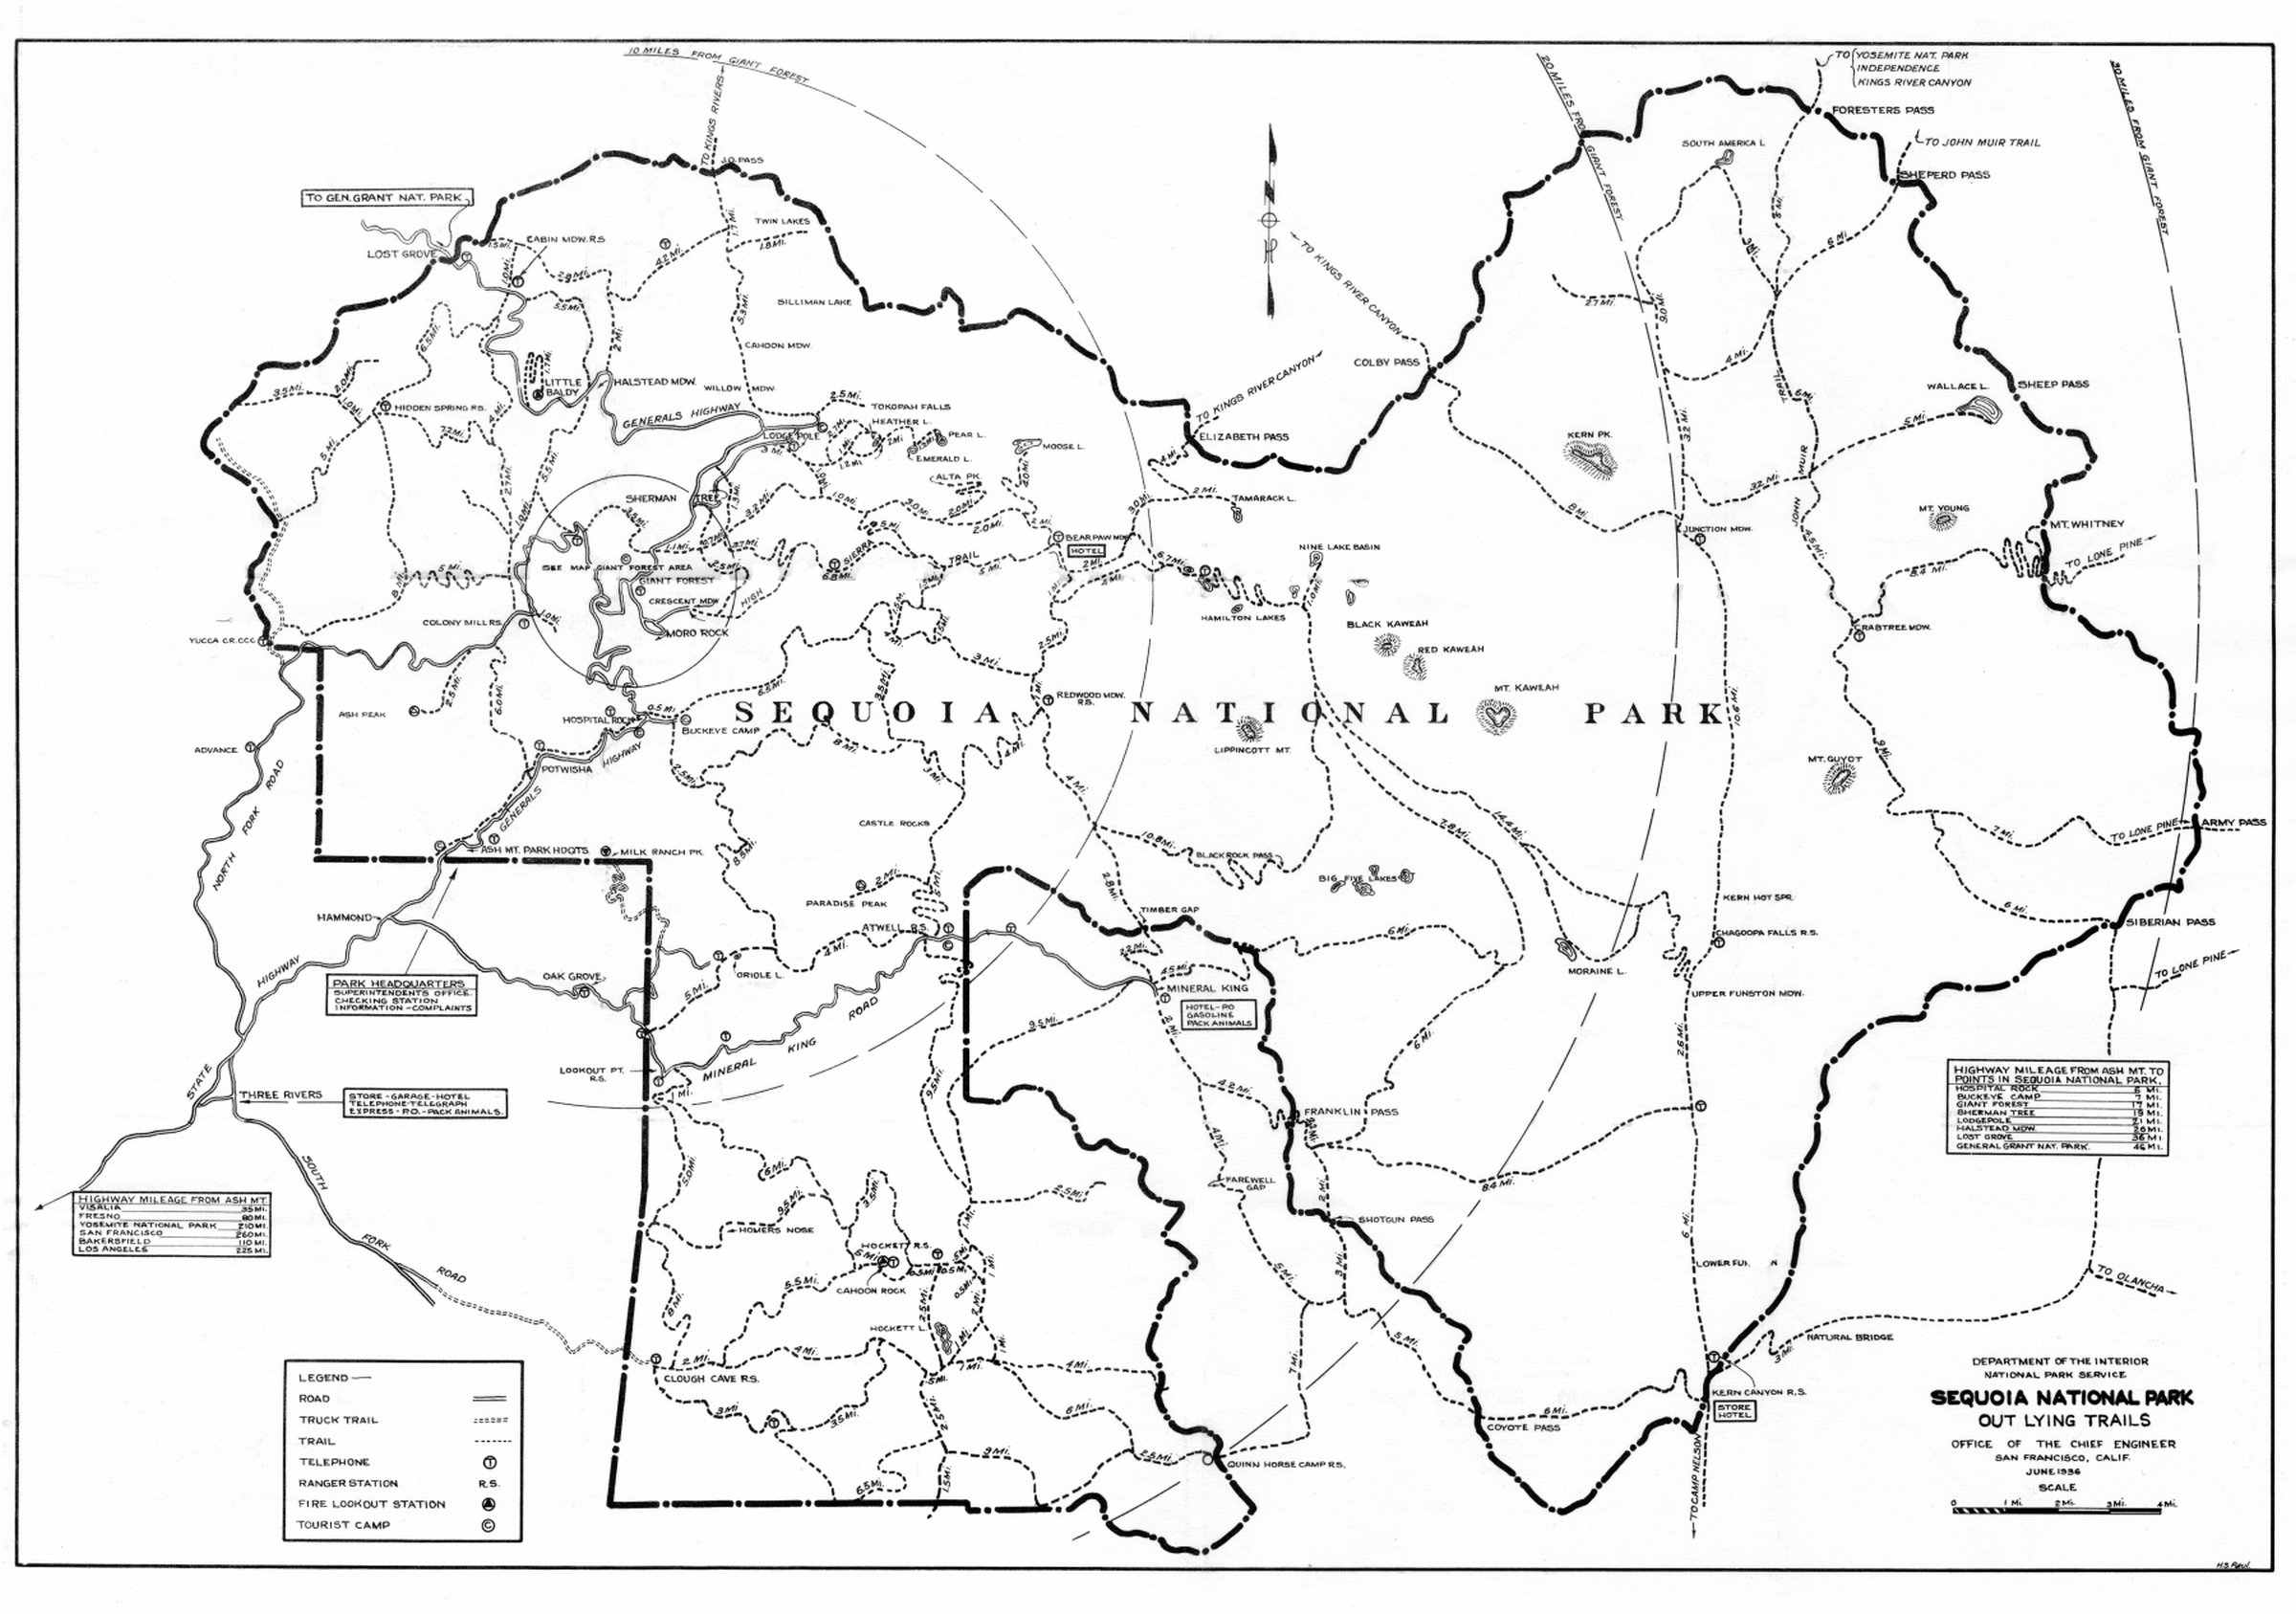 Sequoia California Map.The Project Gutenberg Ebook Of Sequoia California National Park